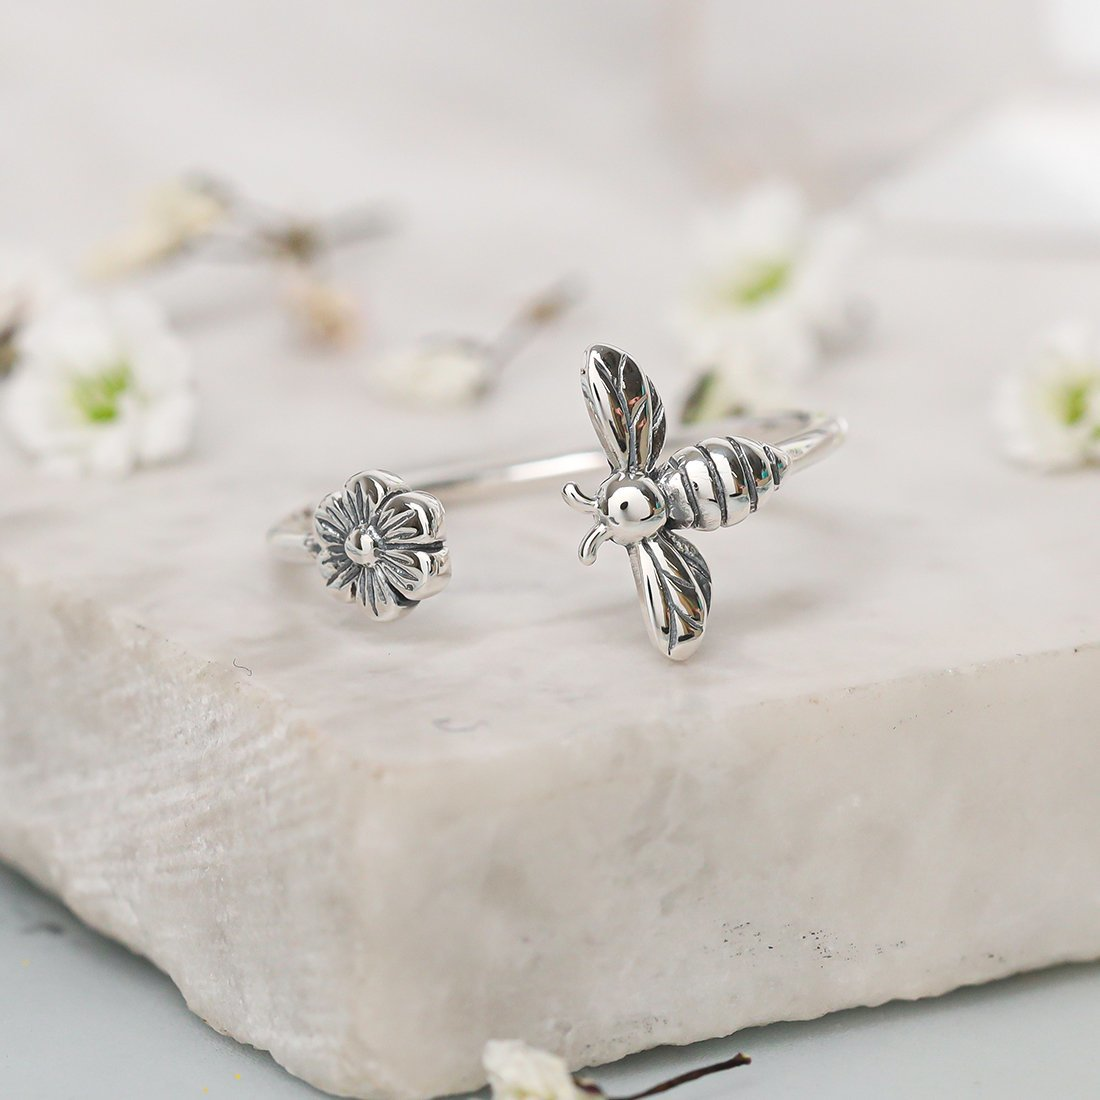 Midsummer Star: Meant to Bee Ring (Size 6) image